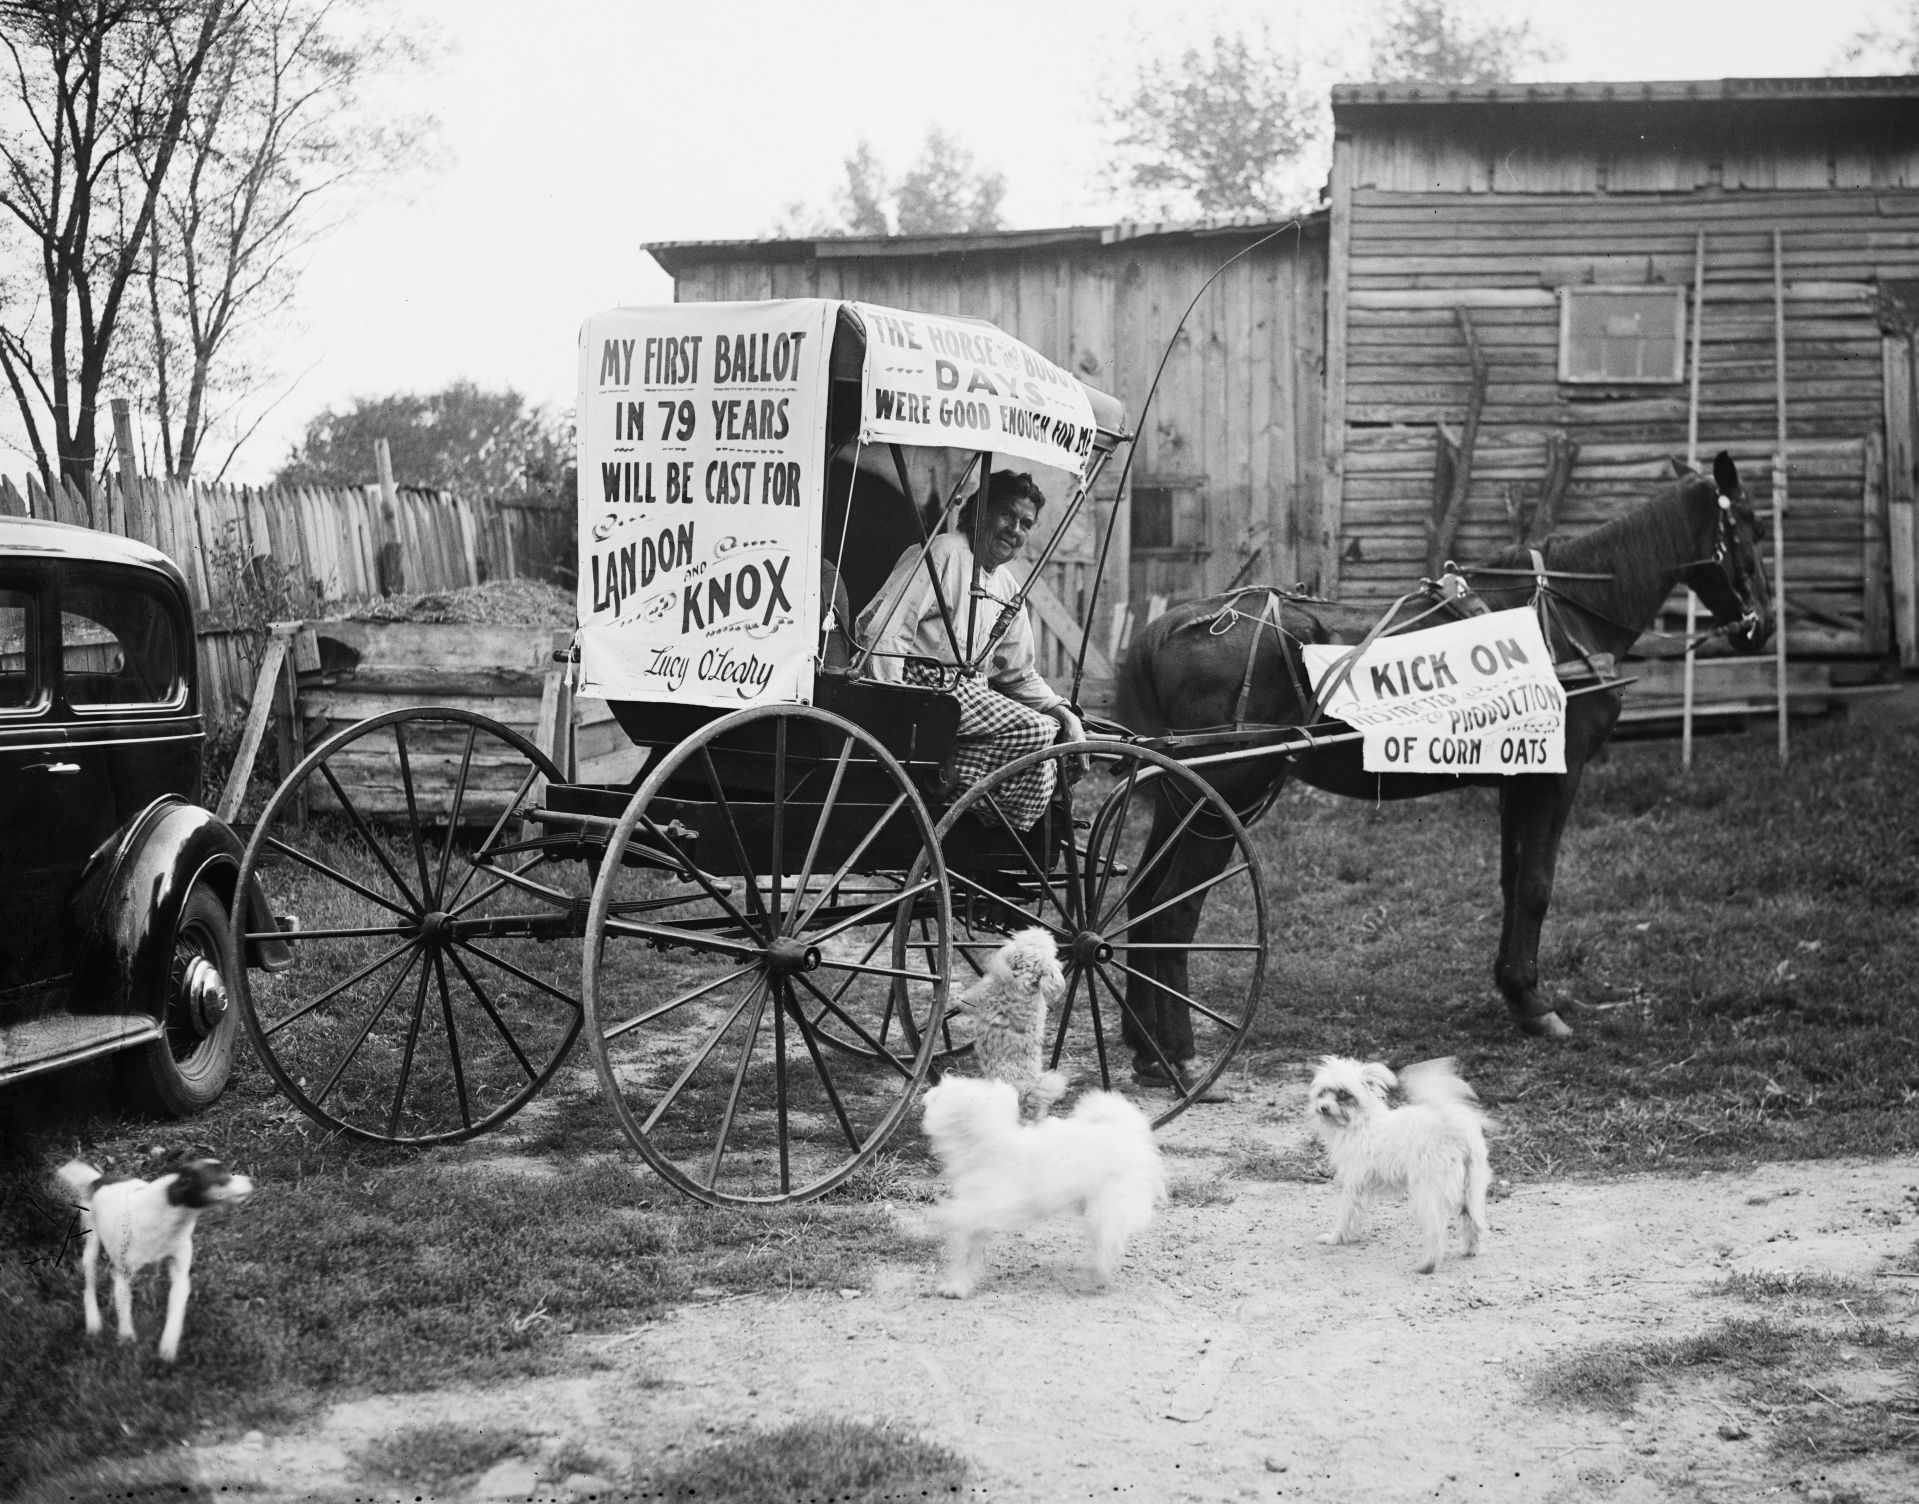 HEC/33900/33957a.tif  Votes for first time at 79. Arlington, VA, Oct. 15. This is Mrs. O'Leary (not the Mrs. O'Leary who kissed the cow who kicked over the lantern to start the Chicago fire) but Mrs. Lucy O'Leary of this town who will cast her first vote on November 3 at age 79, for Gov. Landon. She now lives on small government pension with the aid of a small garden  Votes for first time at 79. Arlington, VA, Oct. 15. This is Mrs. O'Leary (not the Mrs. O'Leary who kissed the cow who kicked over the lantern to start the Chicago fire) but Mrs. Lucy O'Leary of this town who will cast her first vote on November 3 at age 79, for Gov. Landon. She now lives on small government pension with the aid of a small garden